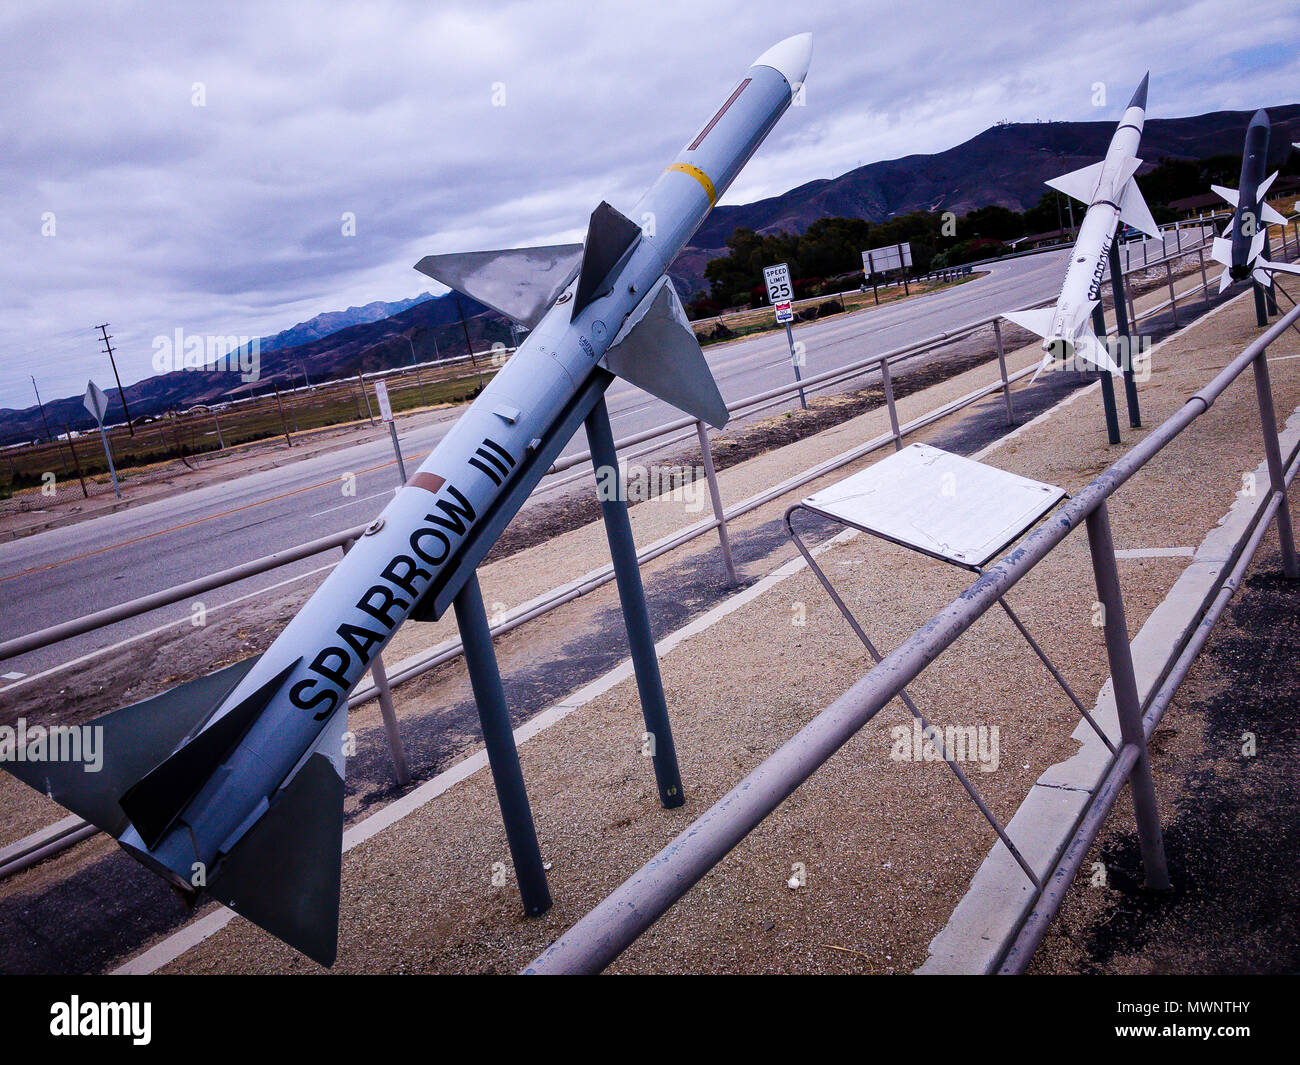 Stock Photo - Sparrow III , Point Mugu Missile Park, Port Hueneme, California, United States  © Hugh Peterswald/Alamy - Stock Image